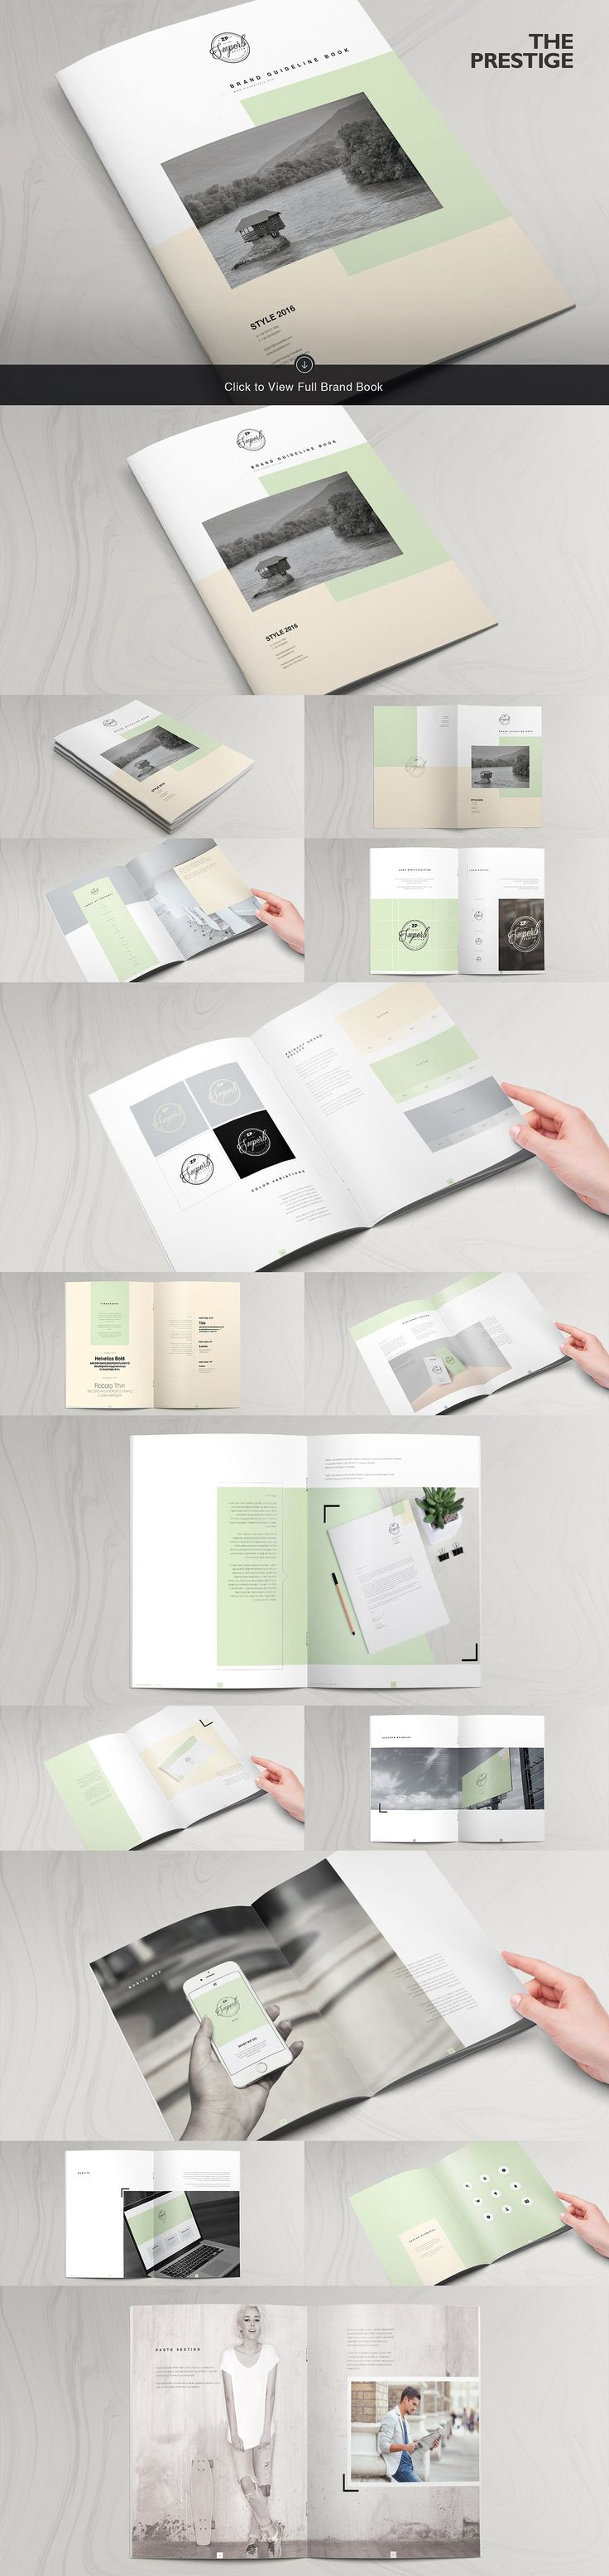 15 Brand Guidelines Templates Bundle by ZippyPixels on @creativemarket #ad